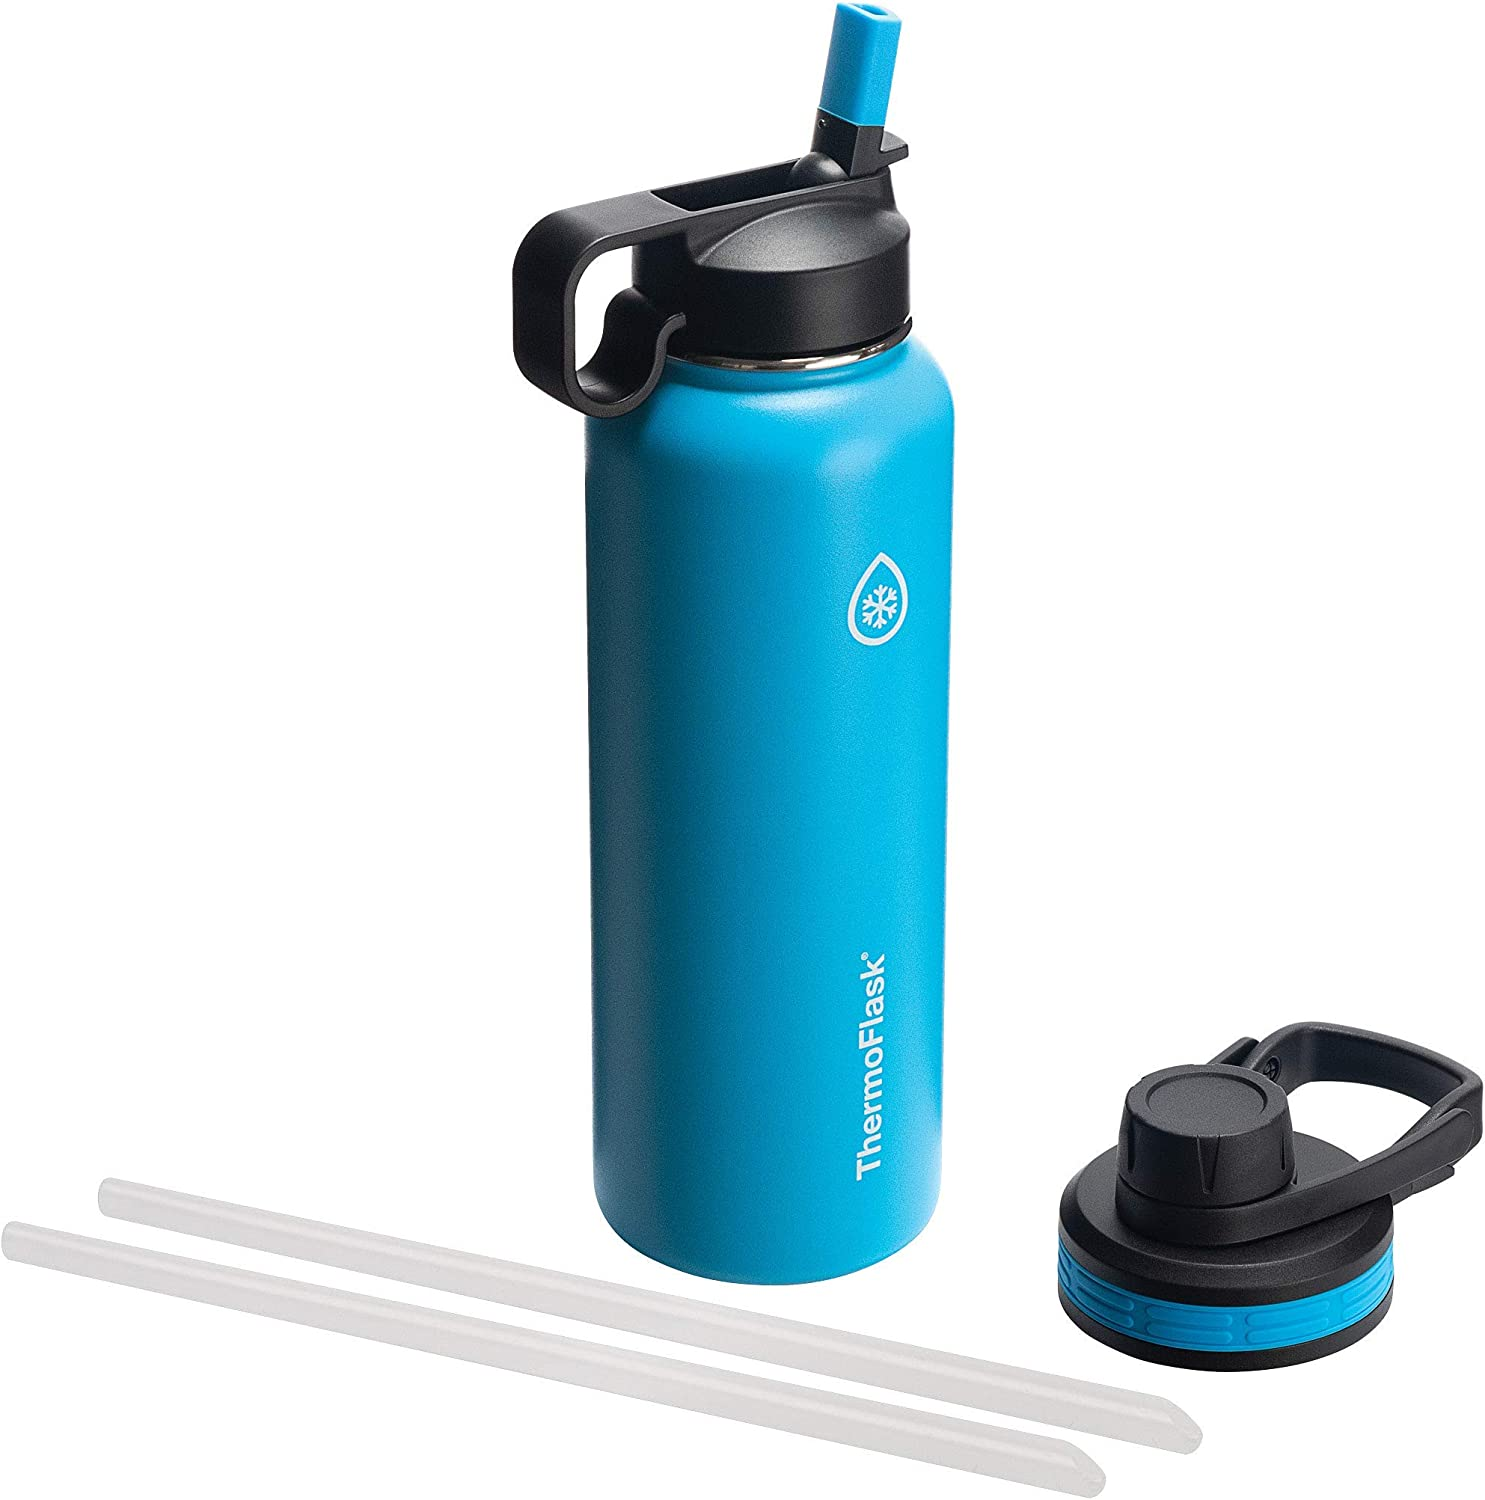 Thermoflask 50062 Double Insulated Stainless Steel Water Bottle with Chug Straw Lid, 40 oz, Capri (Renewed)